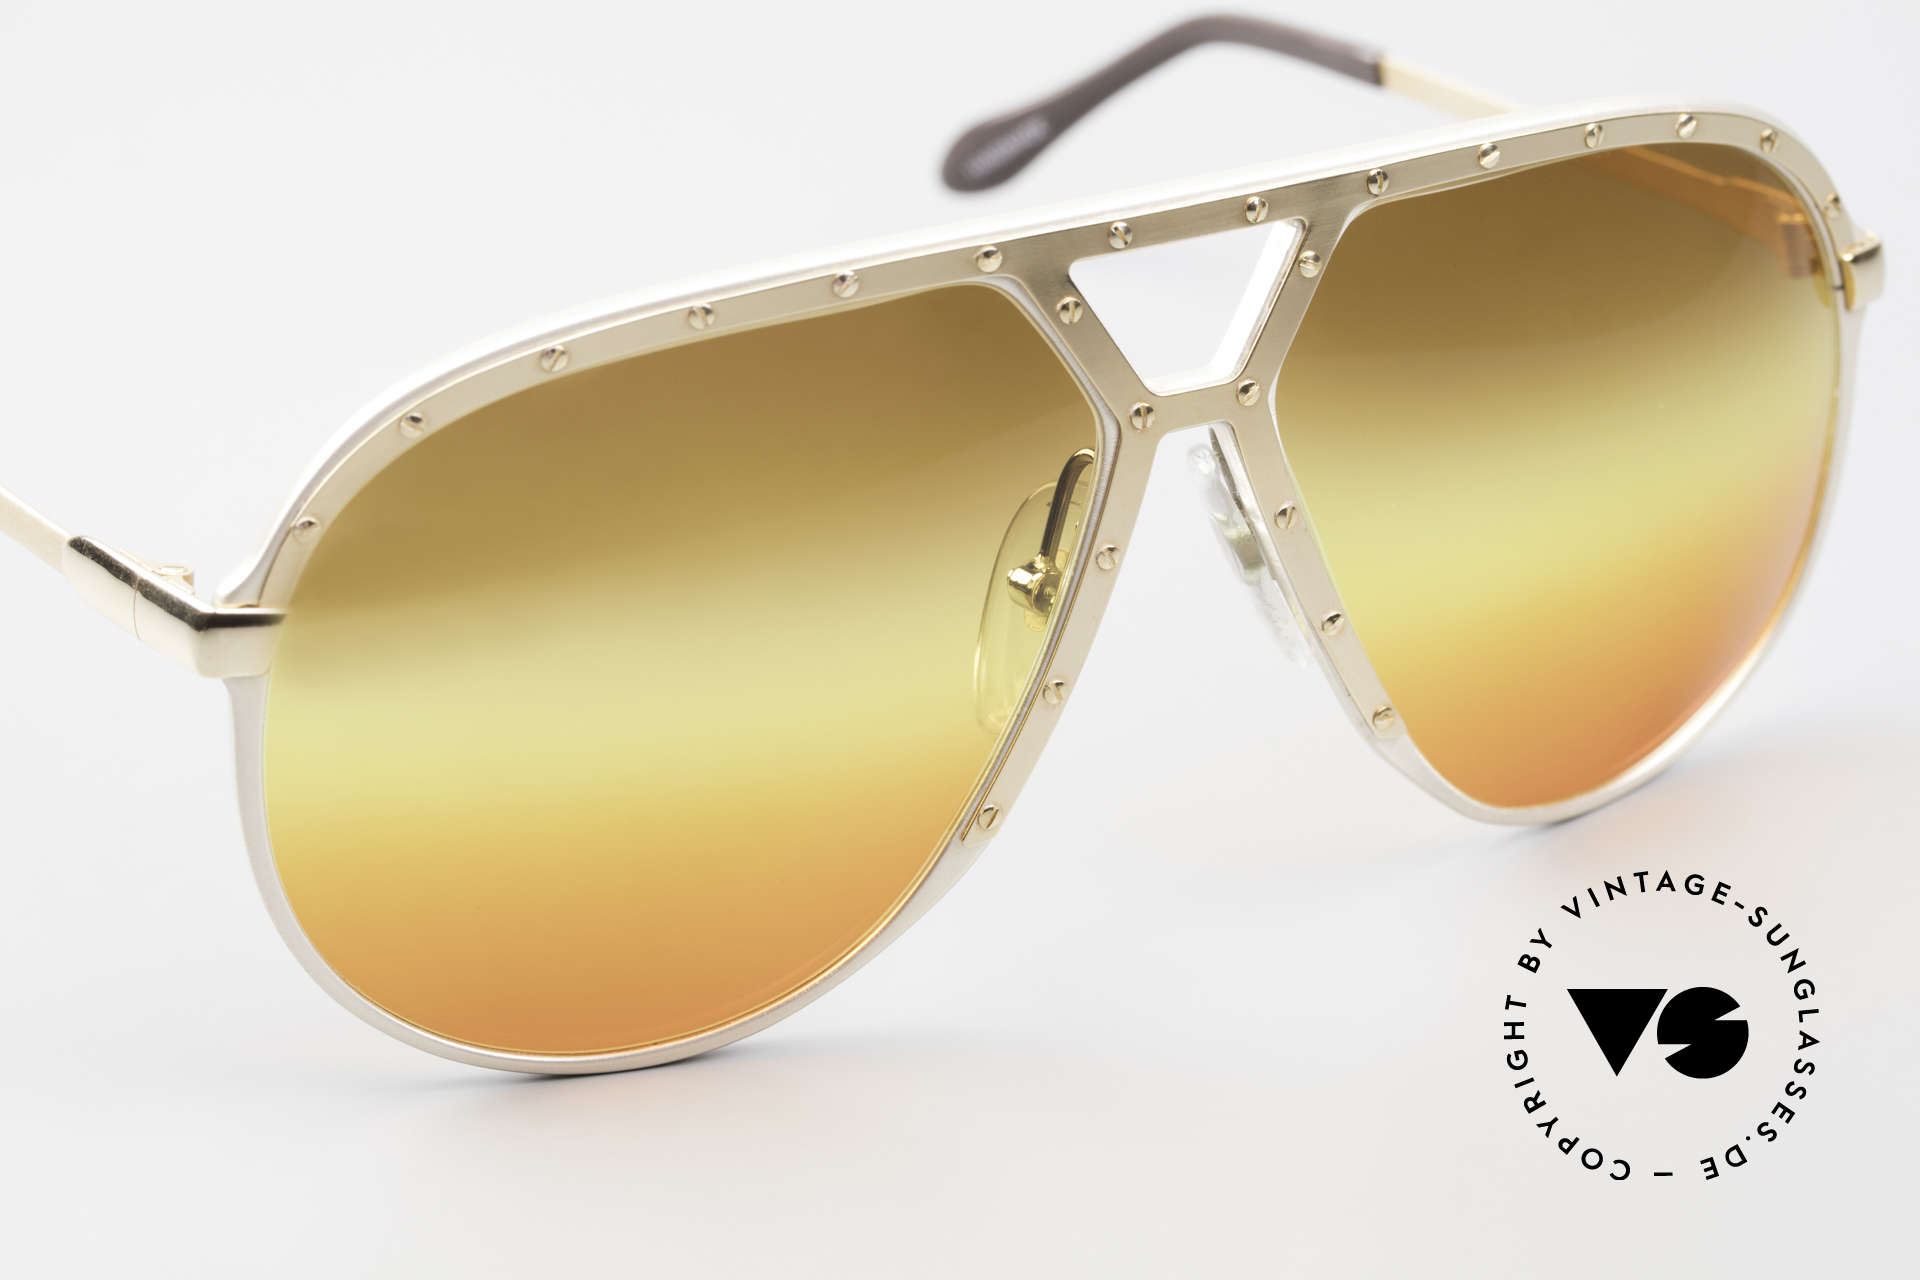 Alpina M1 80's Sunglasses West Germany, unworn collector's item comes with a Porsche case, Made for Men